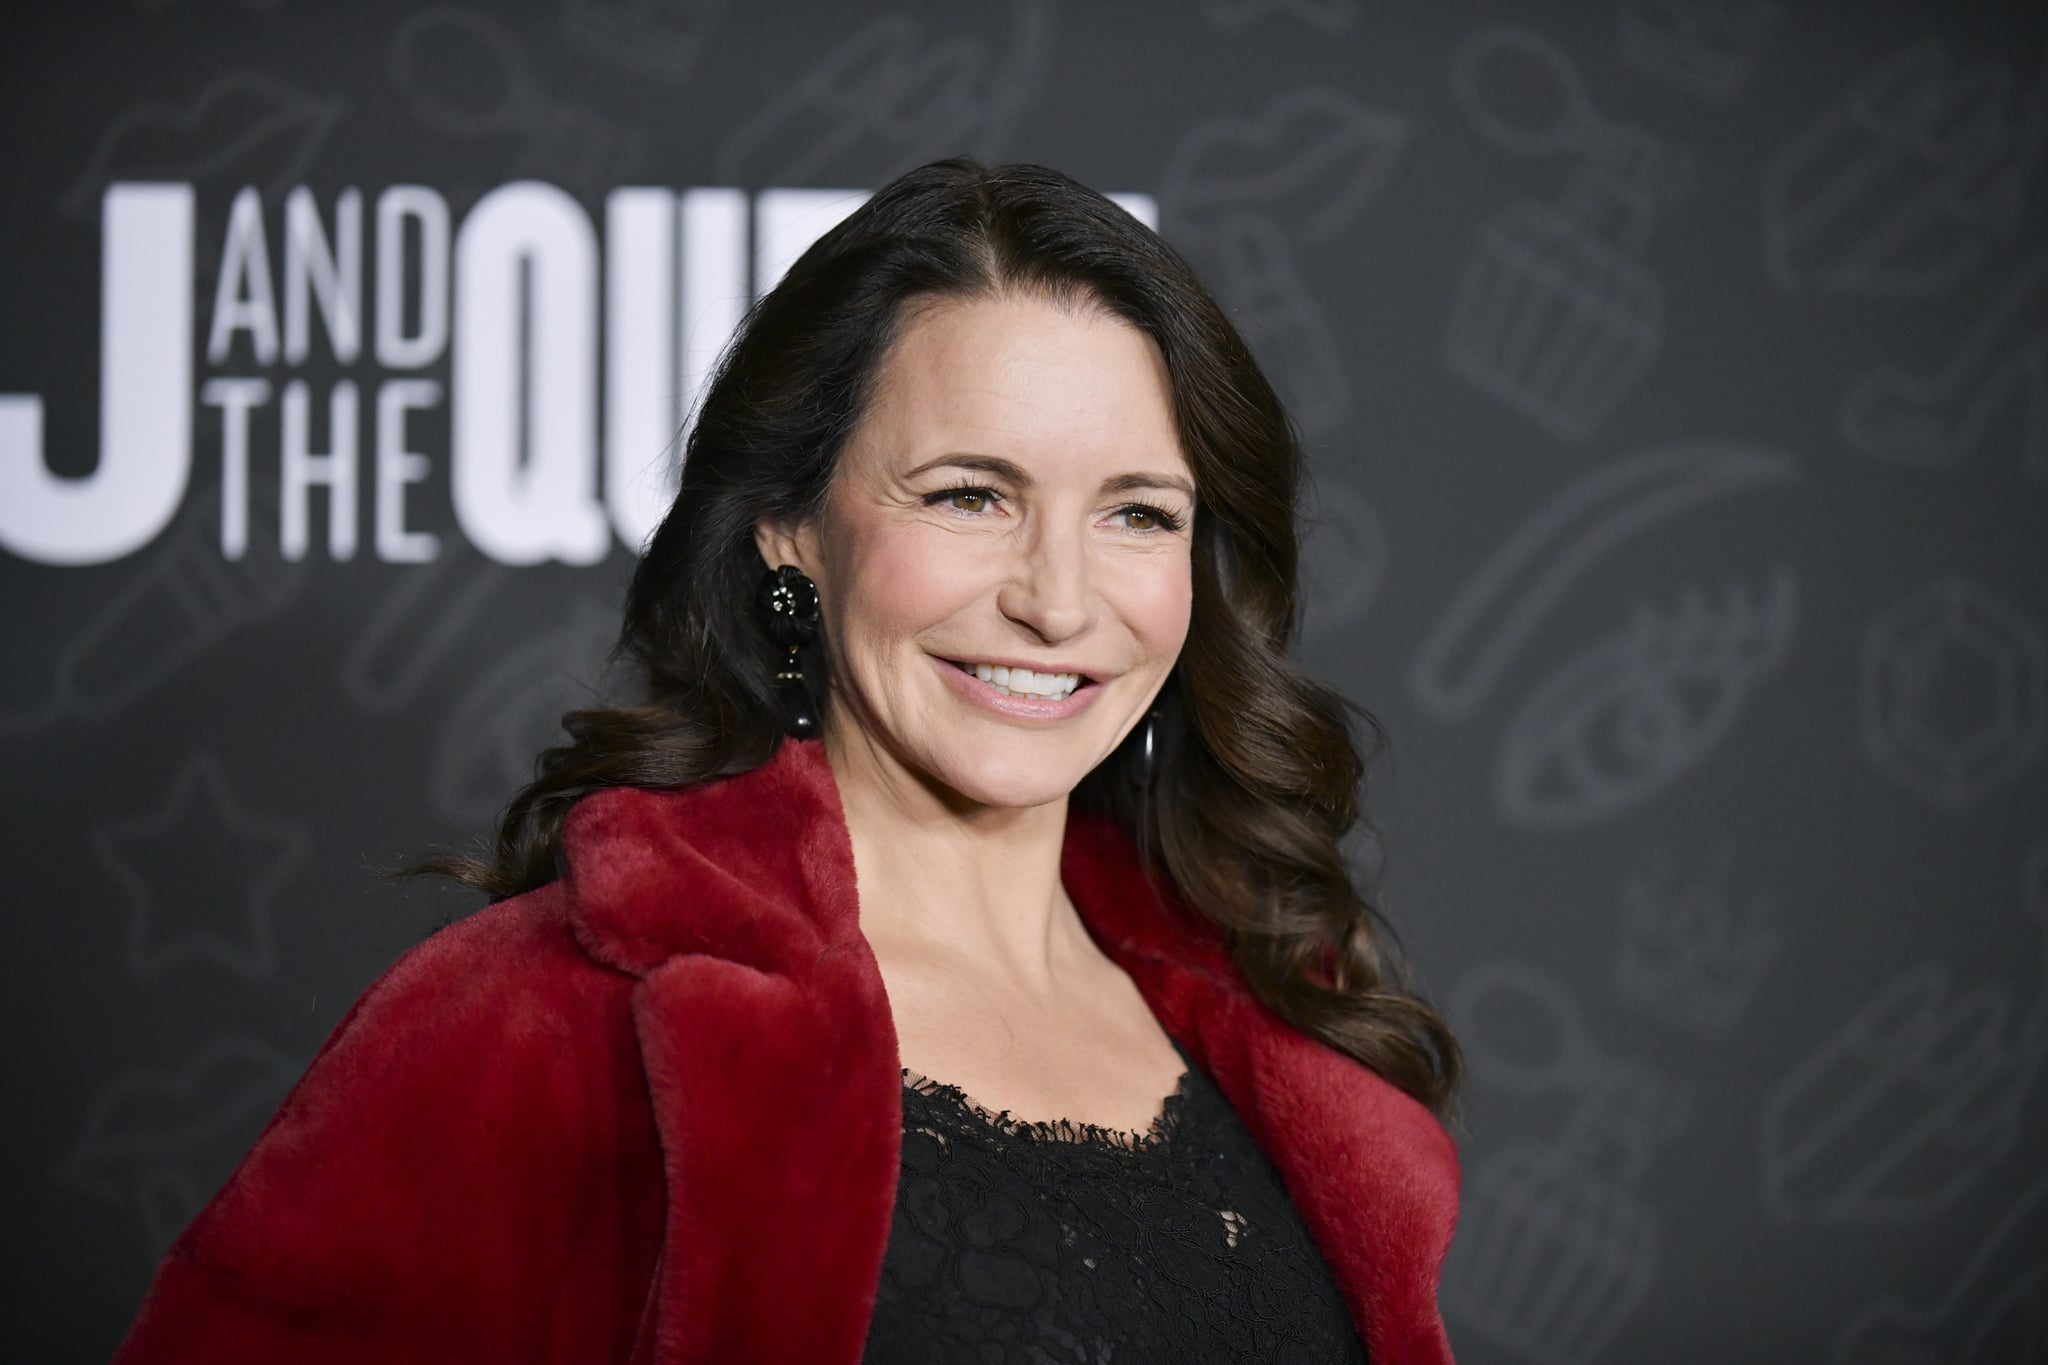 HOLLYWOOD, CALIFORNIA - JANUARY 09: Kristin Davis attends Premiere of Netflix's